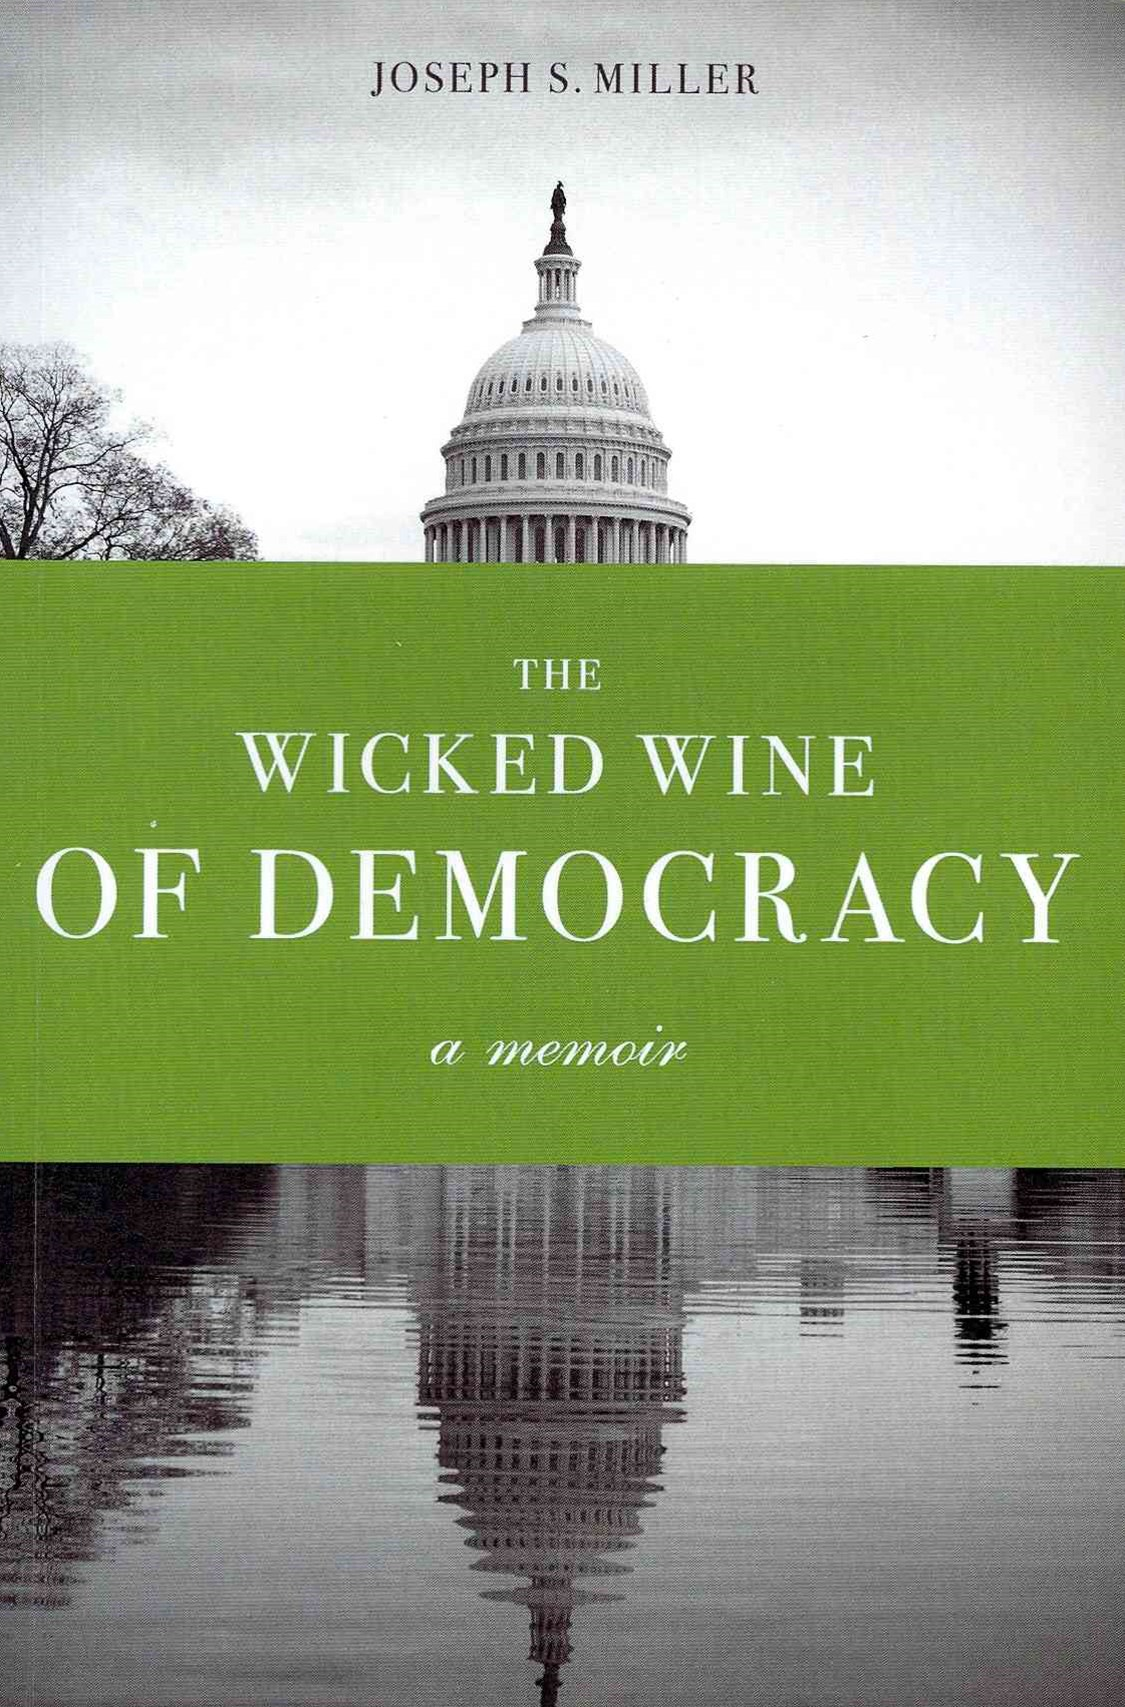 The Wicked Wine of Democracy